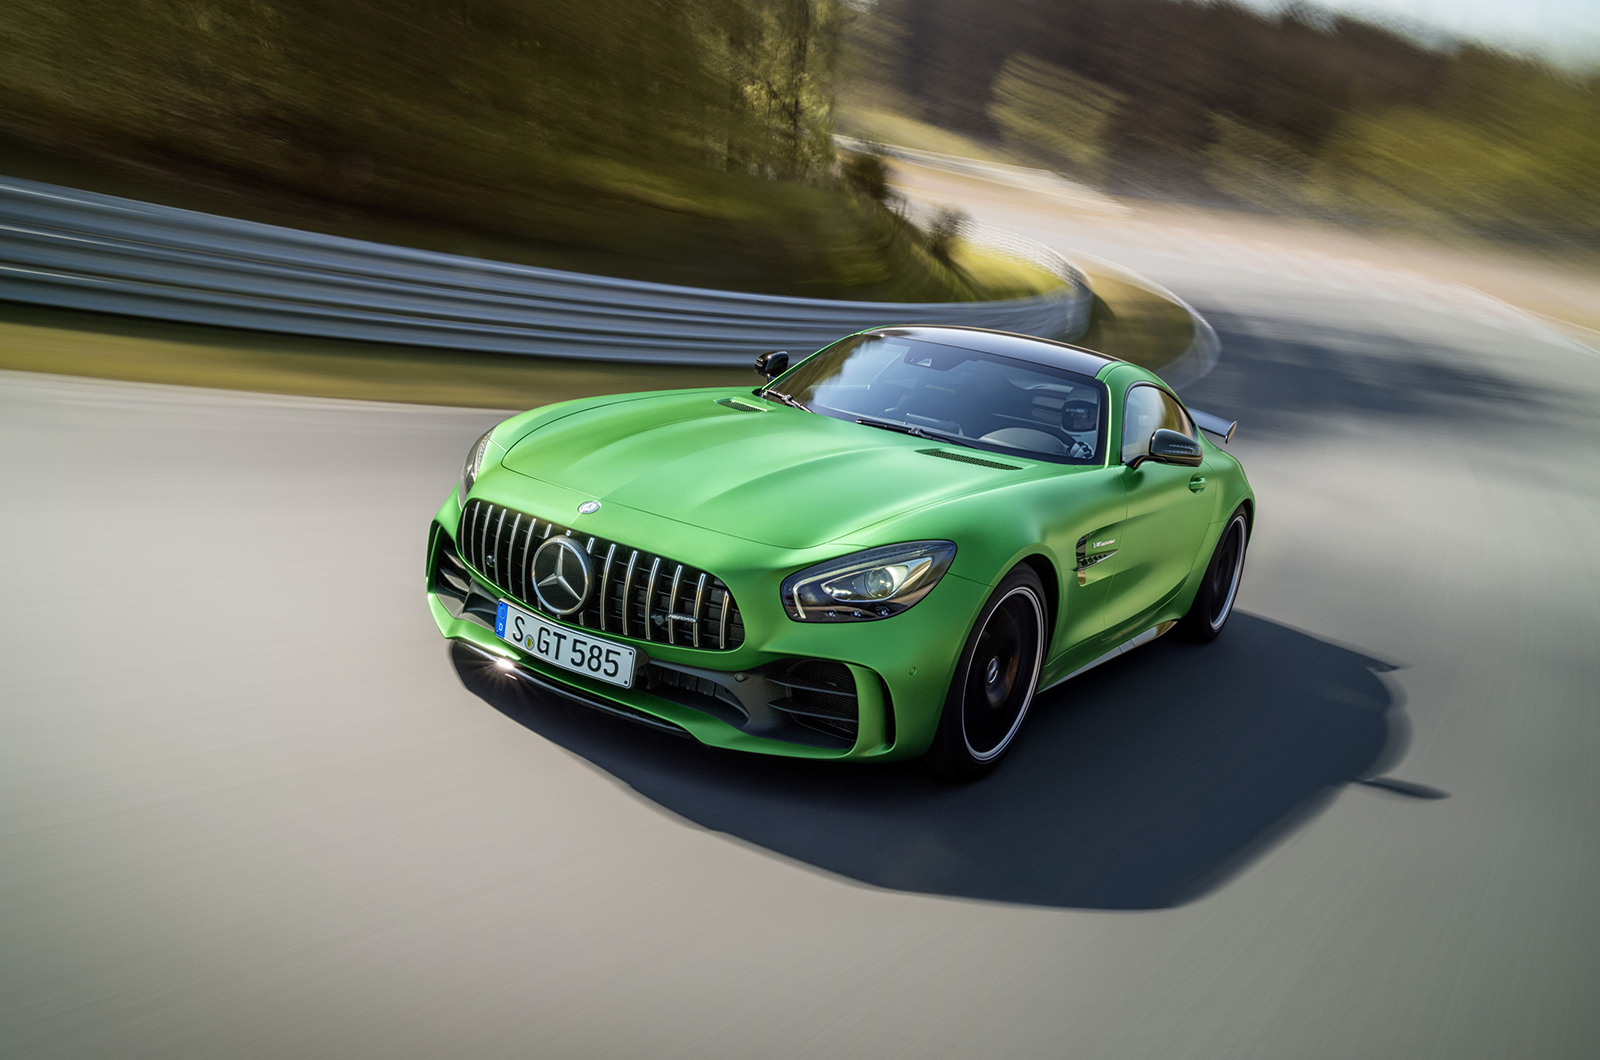 Mercedes AMG GT R Download Free Backgrounds HD